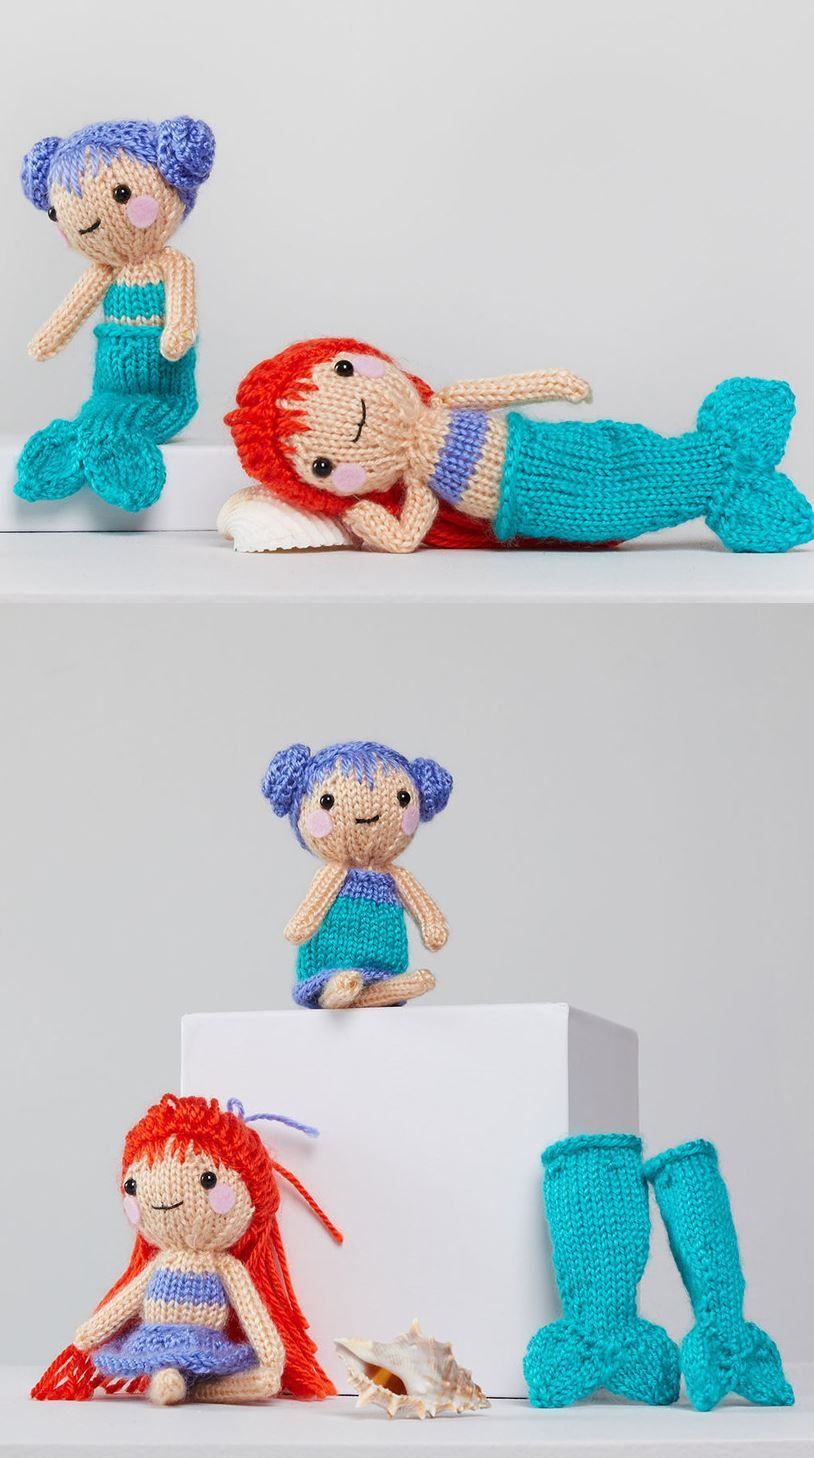 Free Knitting Pattern for Tina & Nina Mermaid #knittedtoys